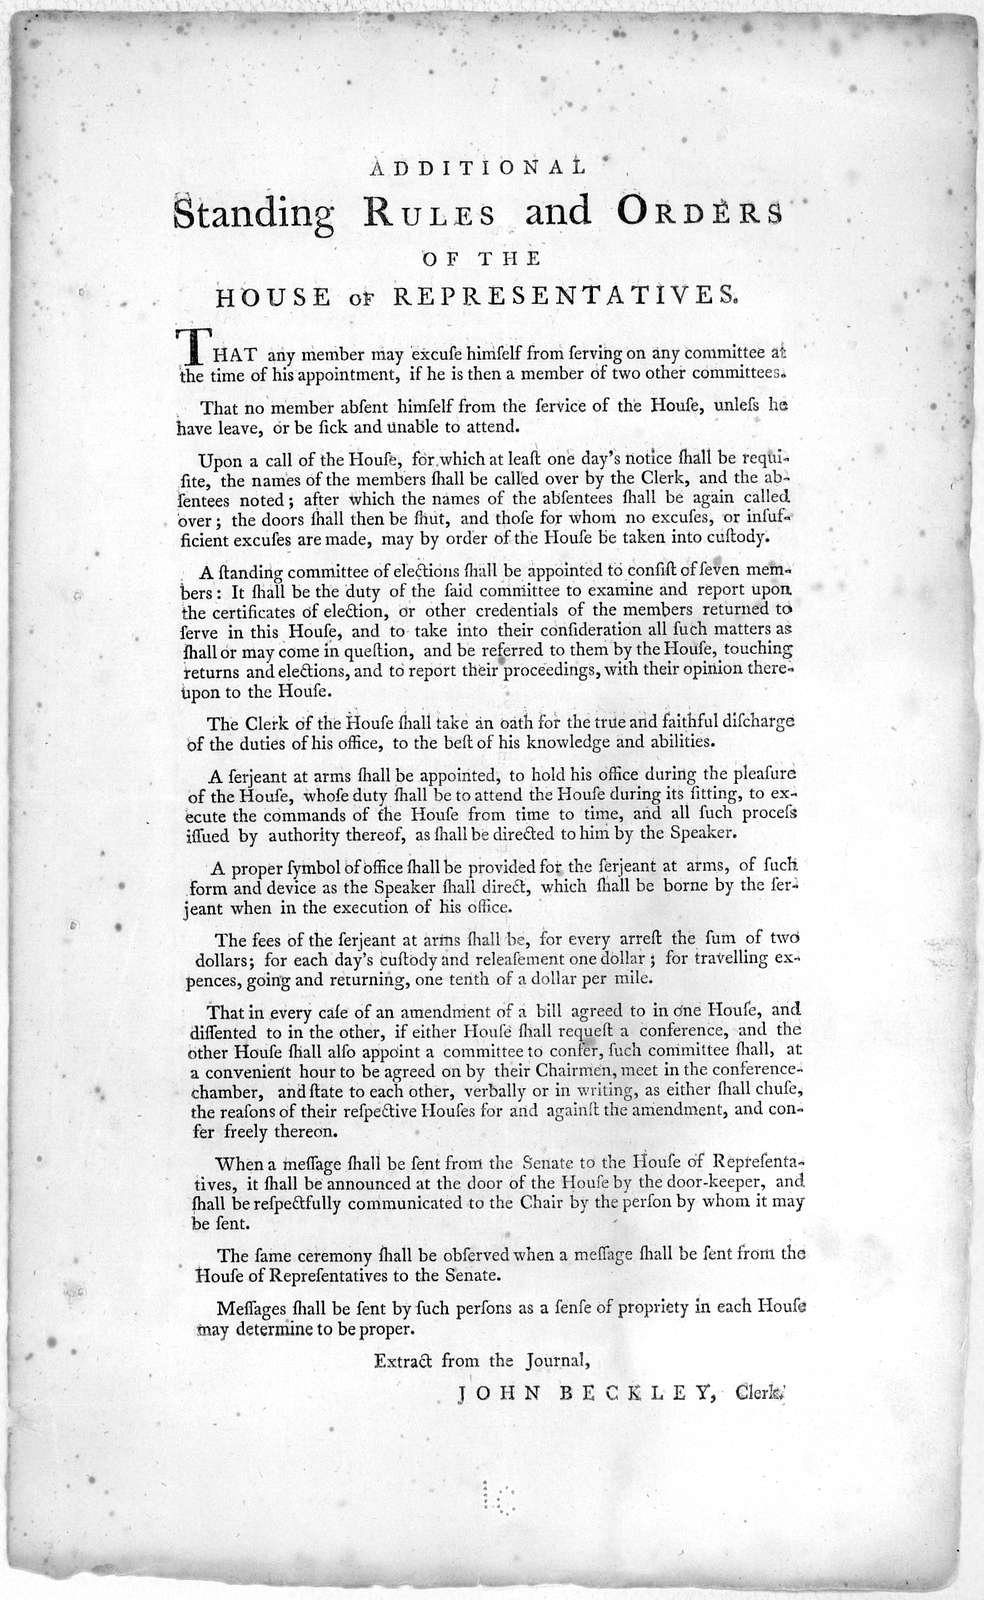 Additional standing rules and orders of the House of representatives. [New York: Francis Childs and John Swaine, 1789].